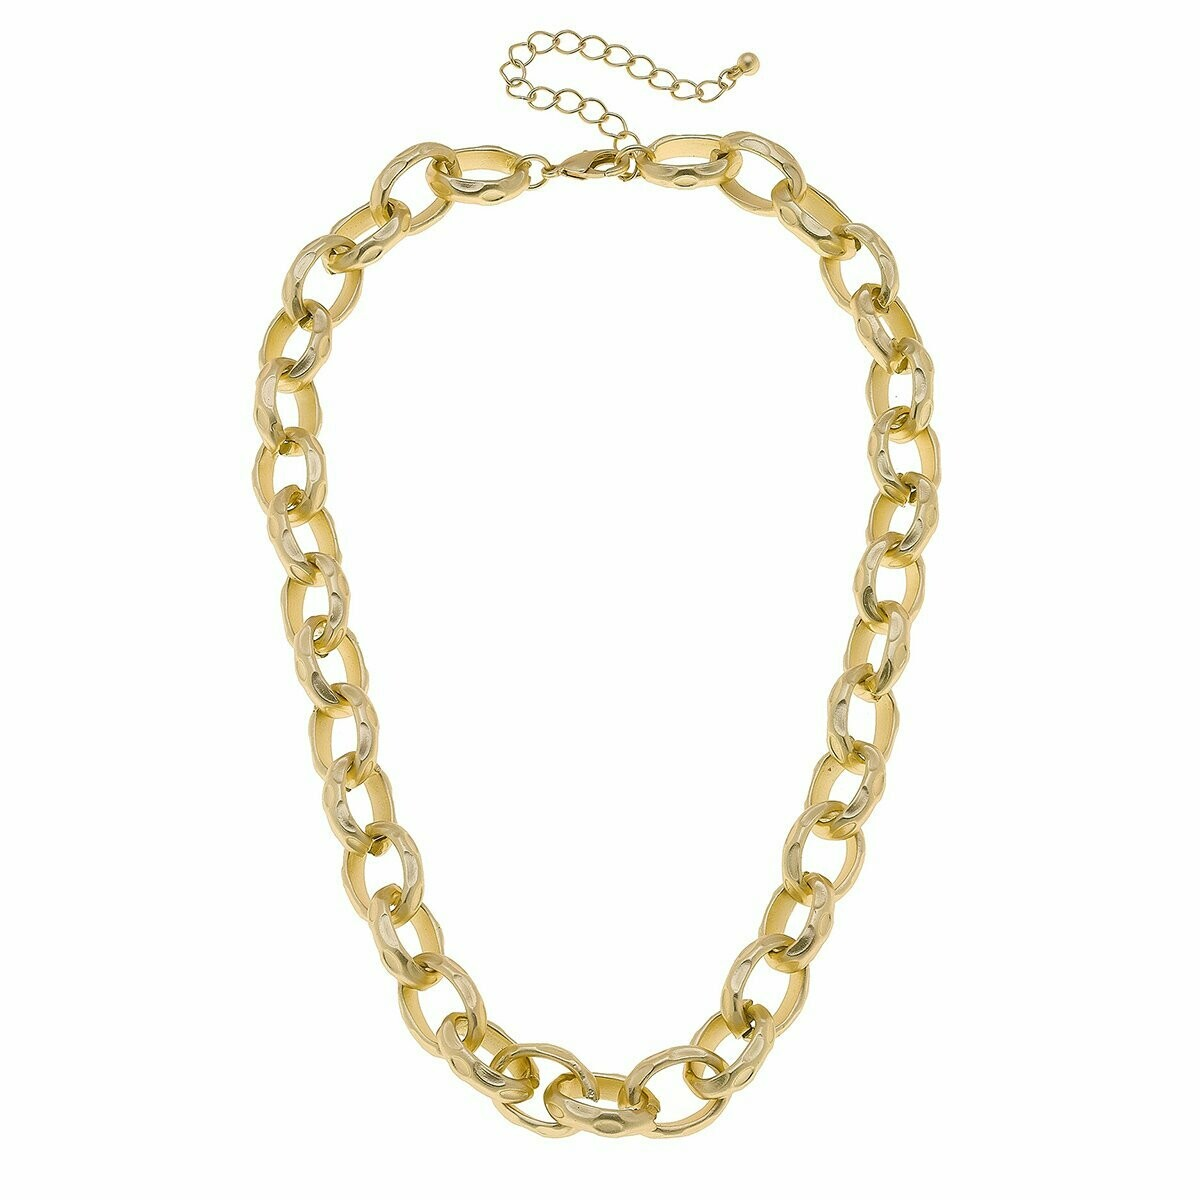 Chain Link Necklace in Matte Gold